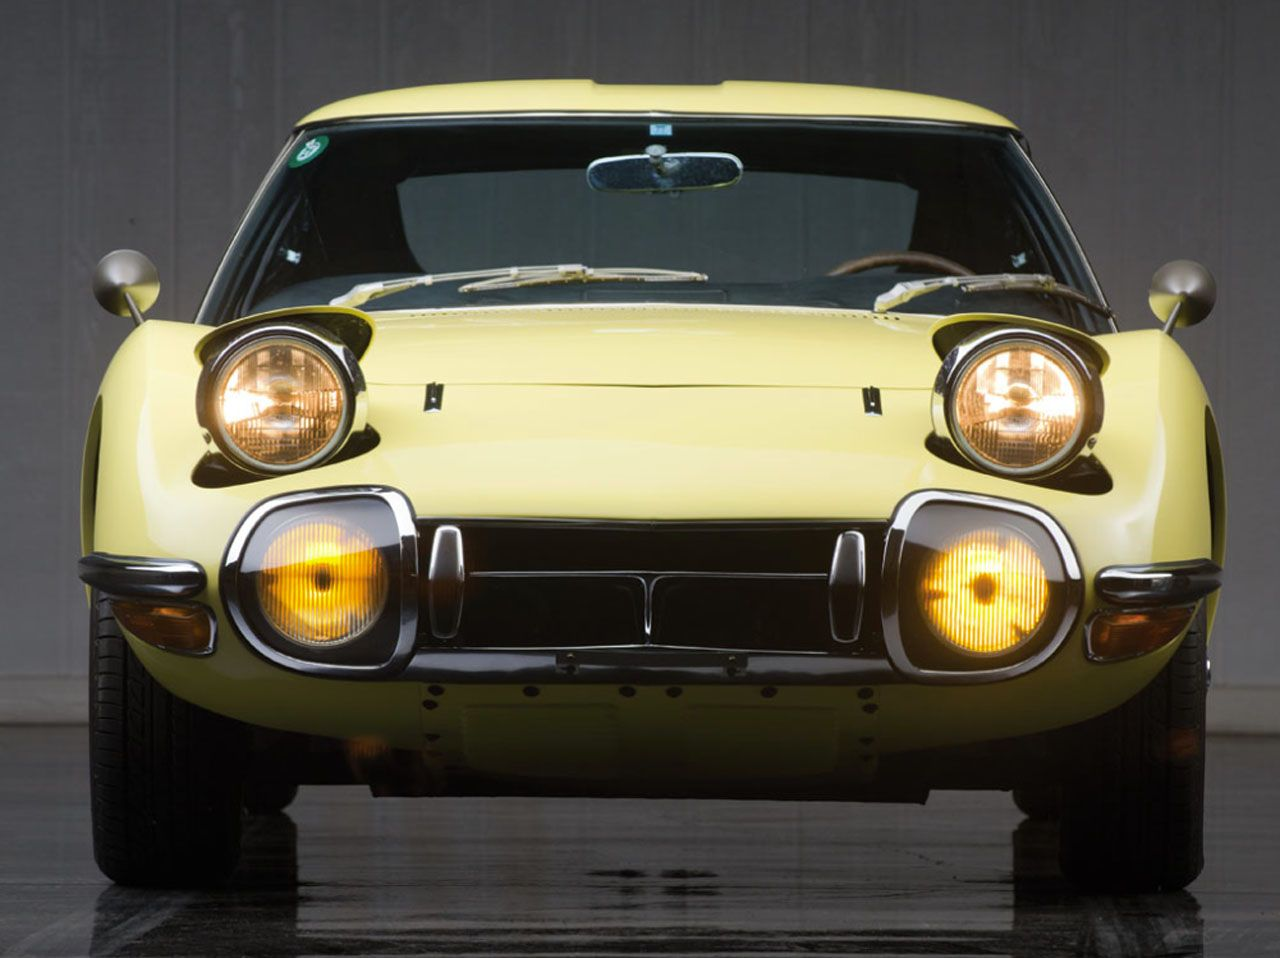 1967 Toyota 2000GT most expensive Asian car ever sold at